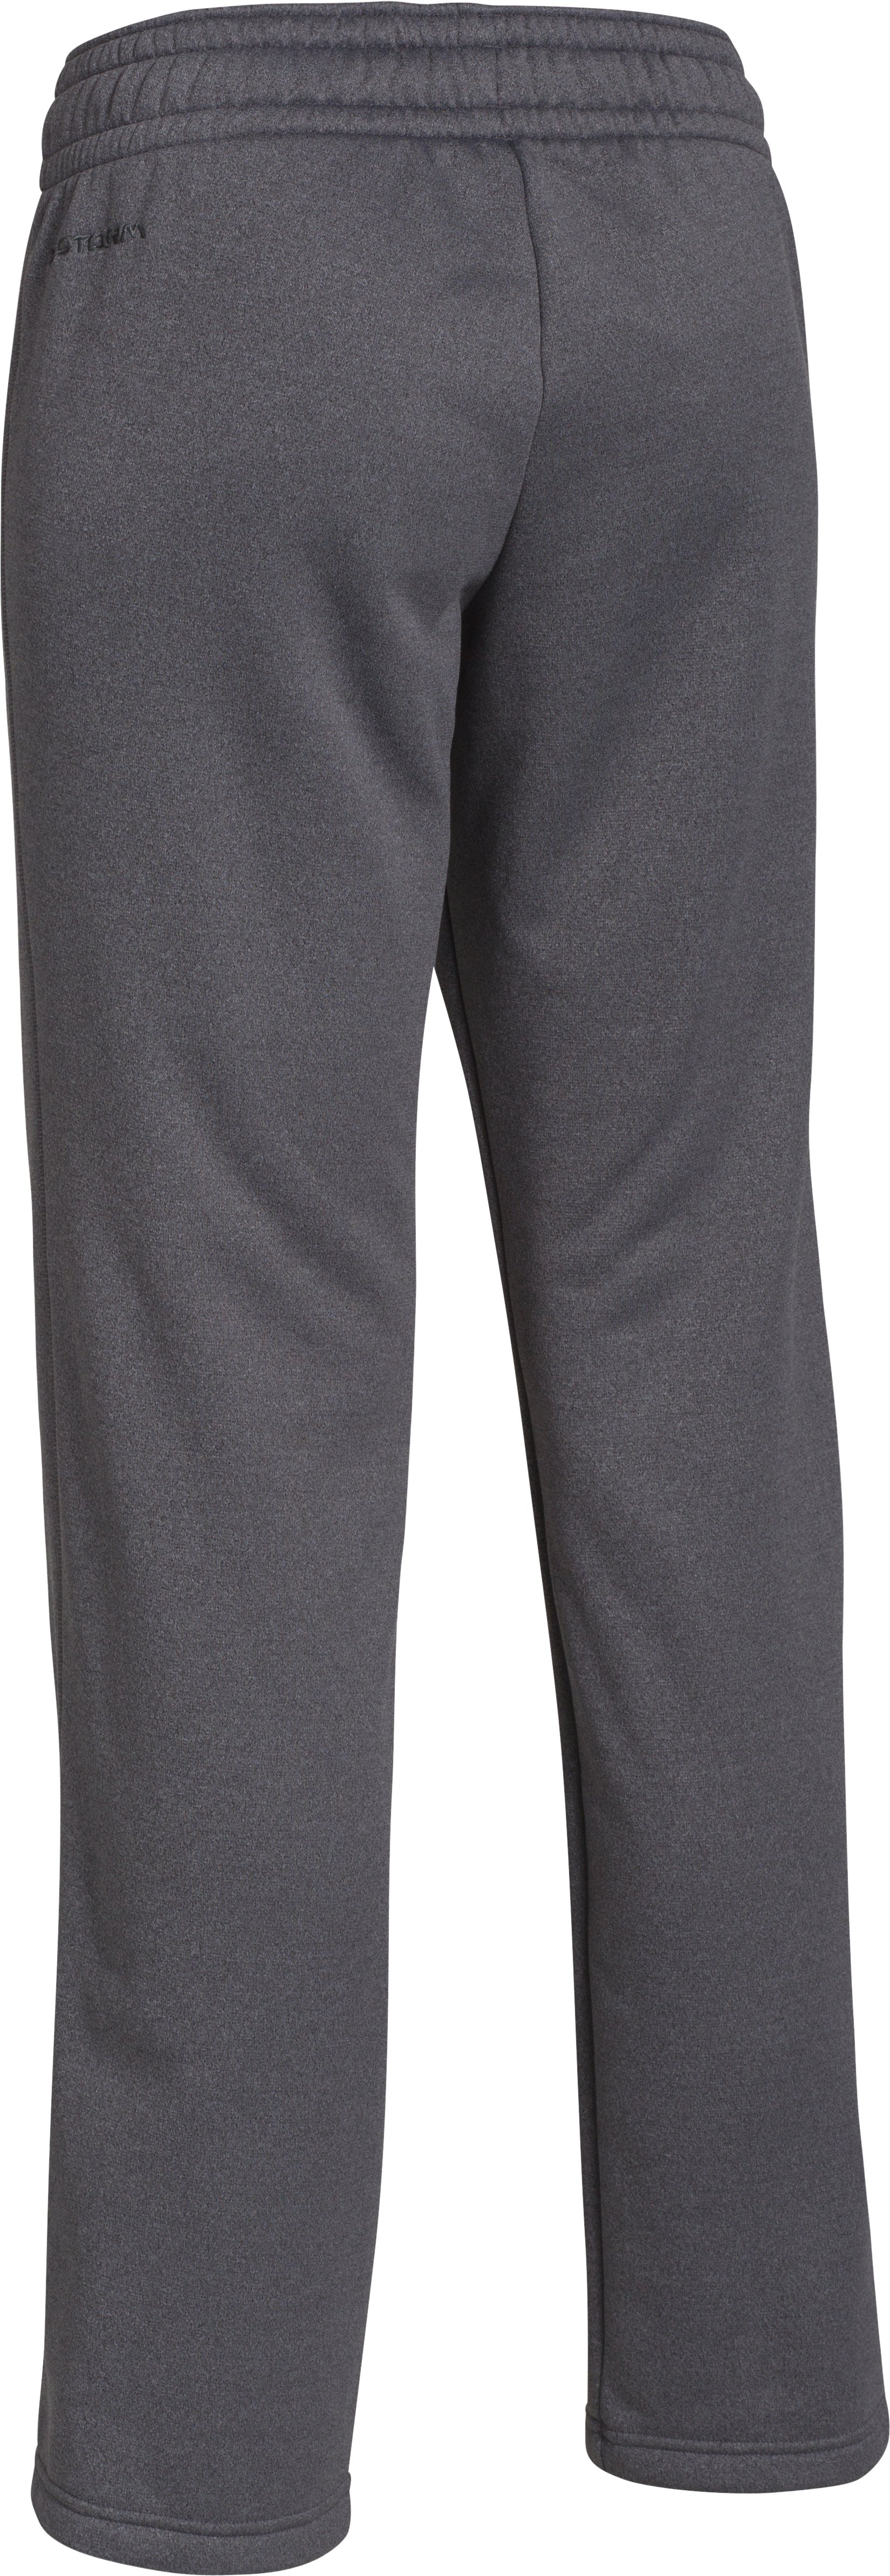 Women's  Armour Fleece® Pants, Carbon Heather, undefined